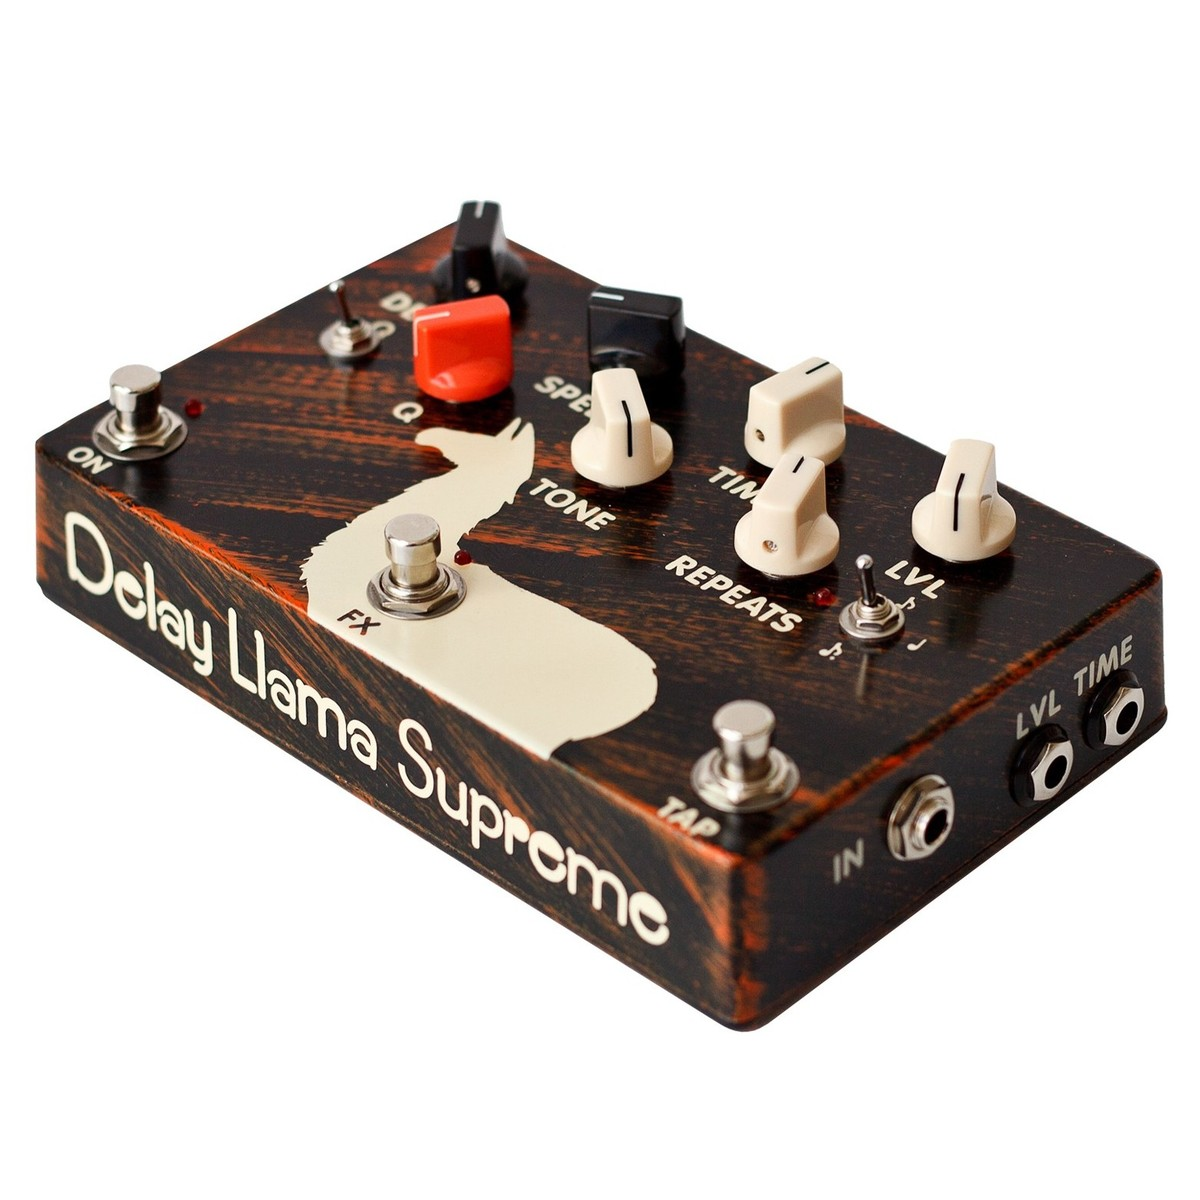 jam pedals delay llama supreme effects pedal at gear4music. Black Bedroom Furniture Sets. Home Design Ideas